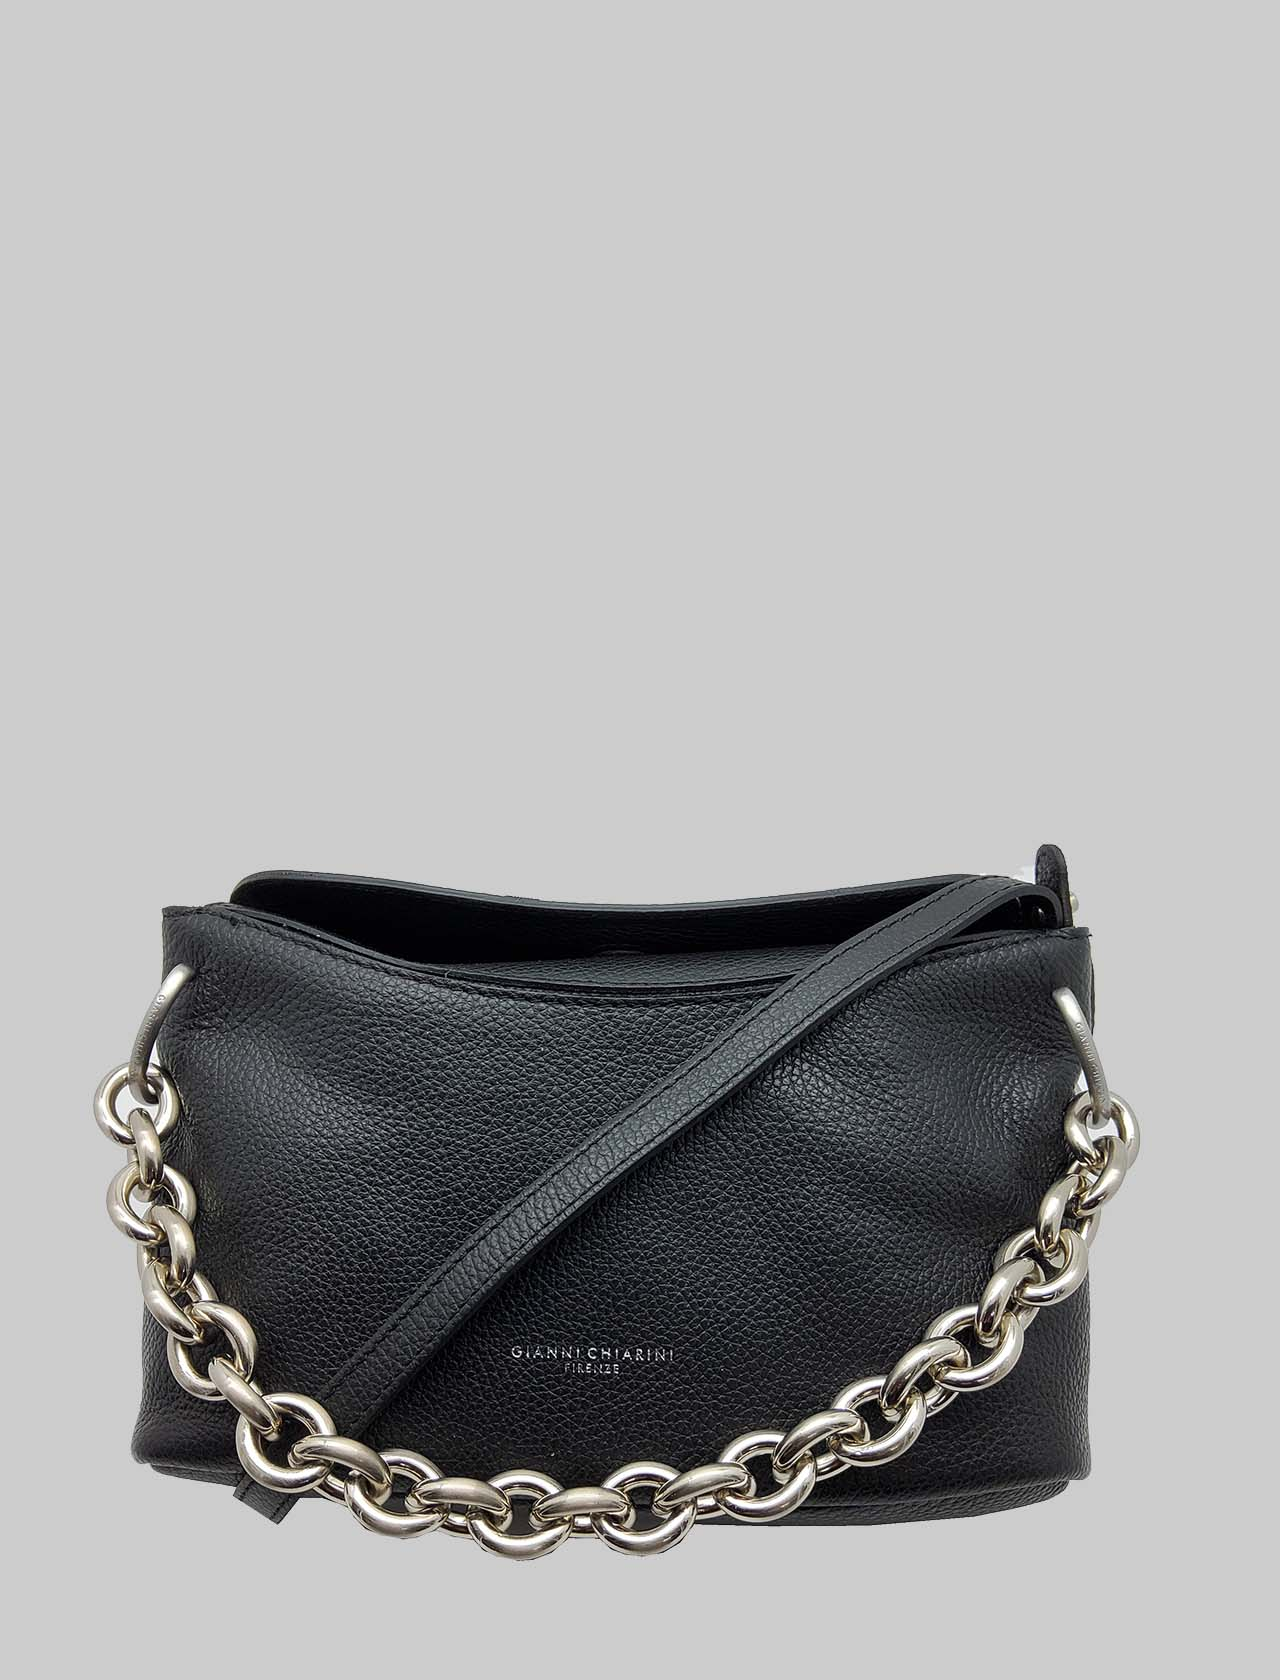 Sophia Woman Shoulder Bag In Black Leather And Silver Chain With Adjustable And Removable Shoulder Strap Gianni Chiarini | Bags and backpacks | BS8516001